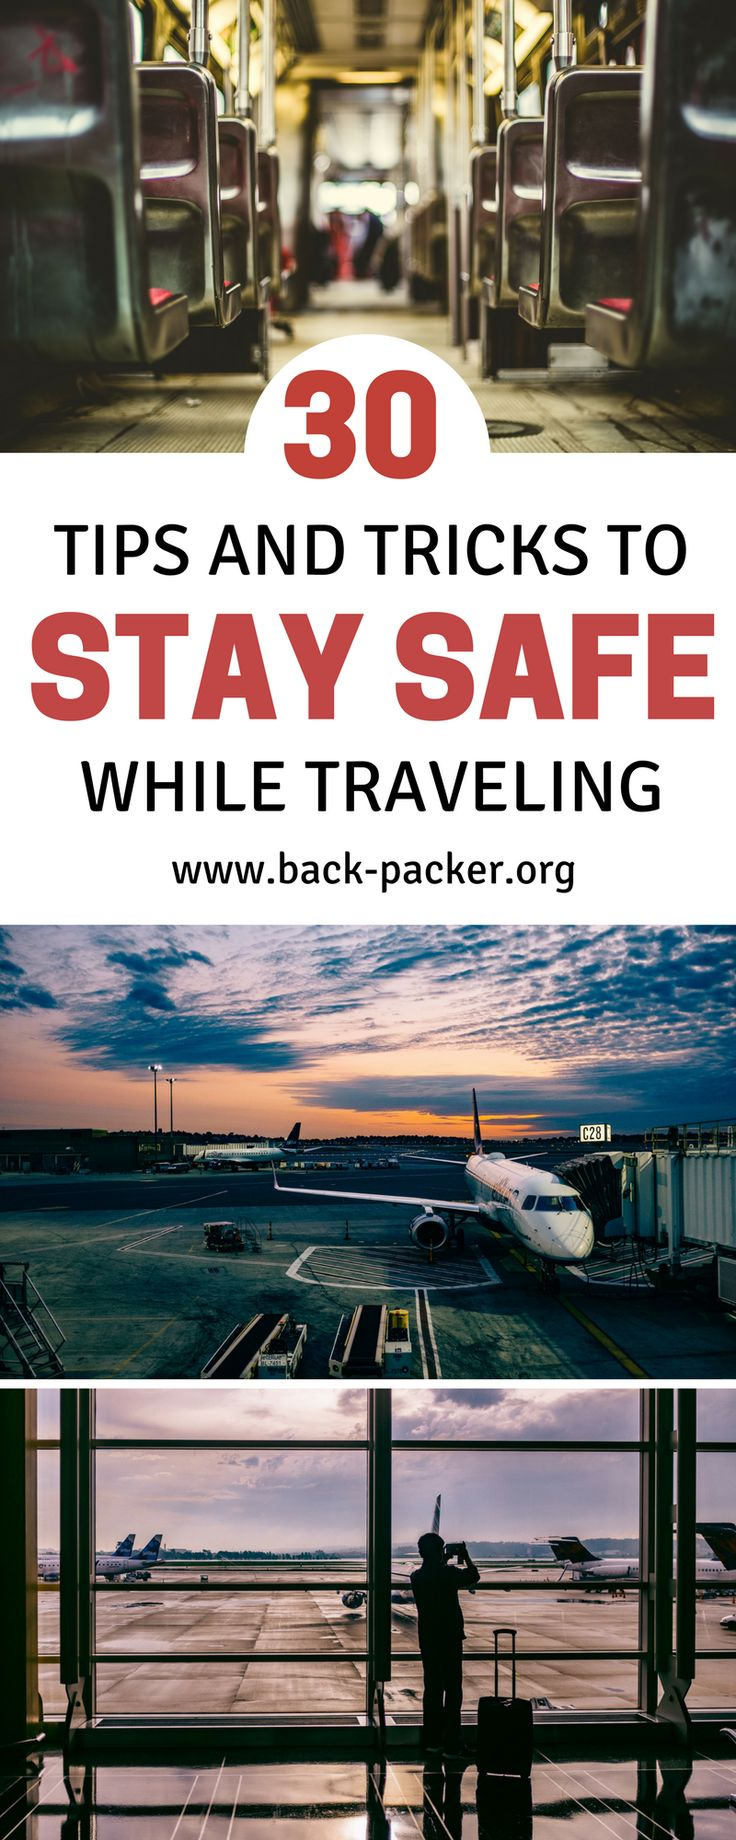 30 tips to help you stay safe while traveling the world. While travel shouldn't scare you, crime does happen all over the world, and simple precautions aimed at protecting yourself and your valuables can go a long way when traveling in a foreign country. Safety tips. | Back-Packer.org